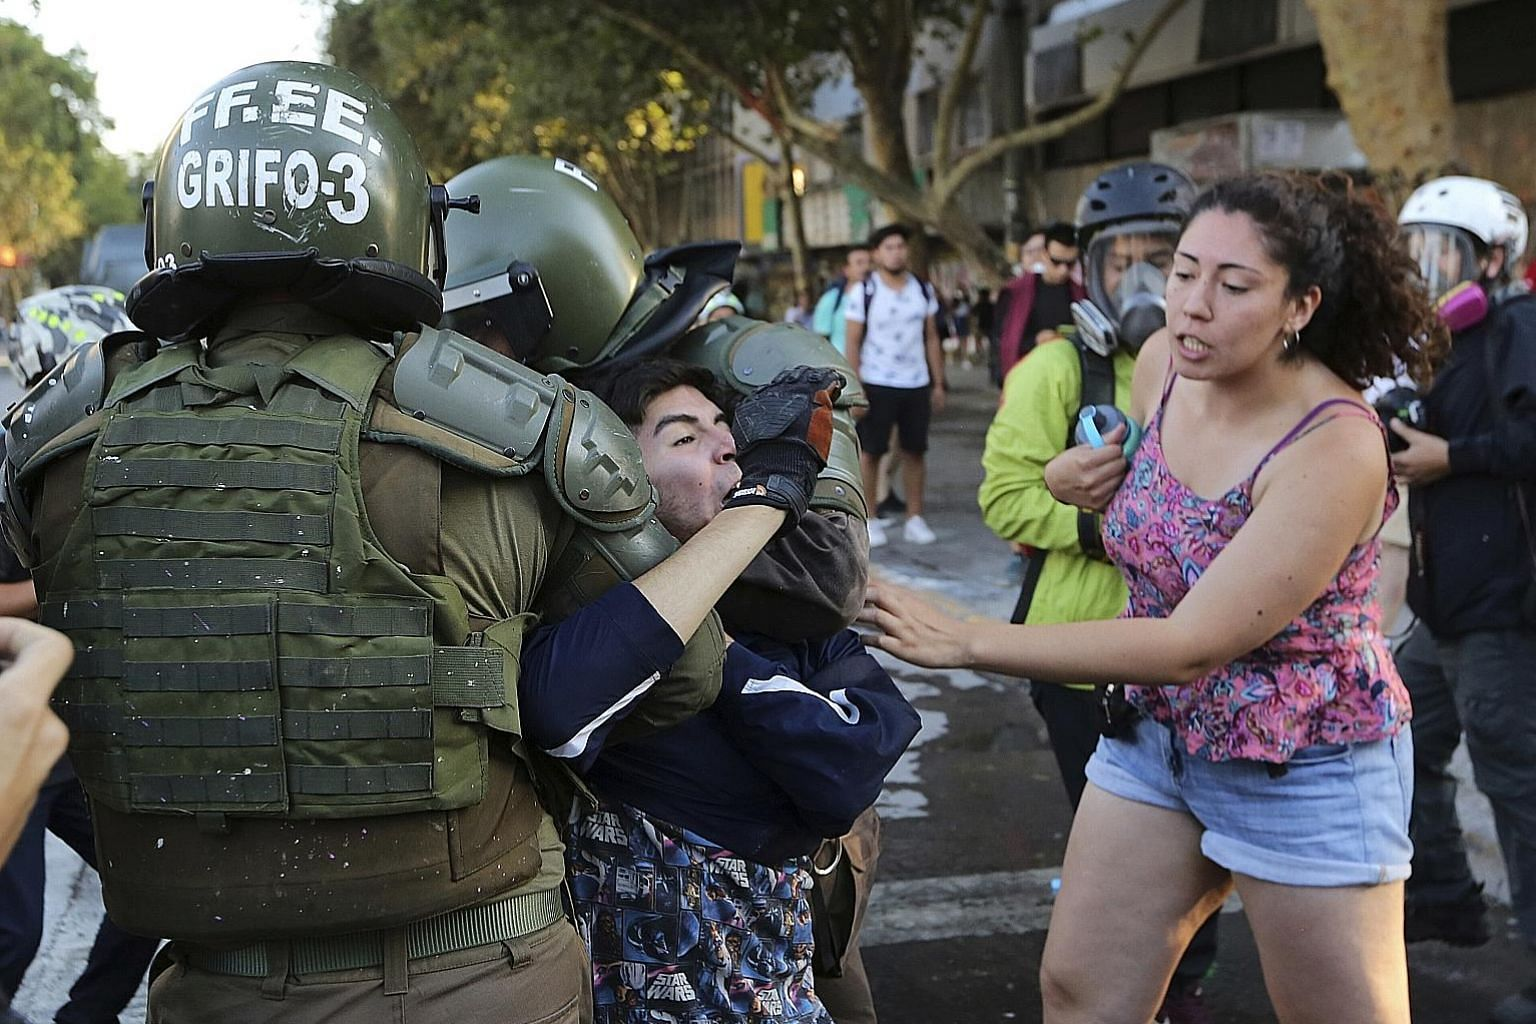 Chilean police arresting an anti-government demonstrator in the capital Santiago on Monday. The writers say one of the myths about protest movements is that non-violent campaigns require charismatic leaders. But in Chile, Social Unity, a broad-based